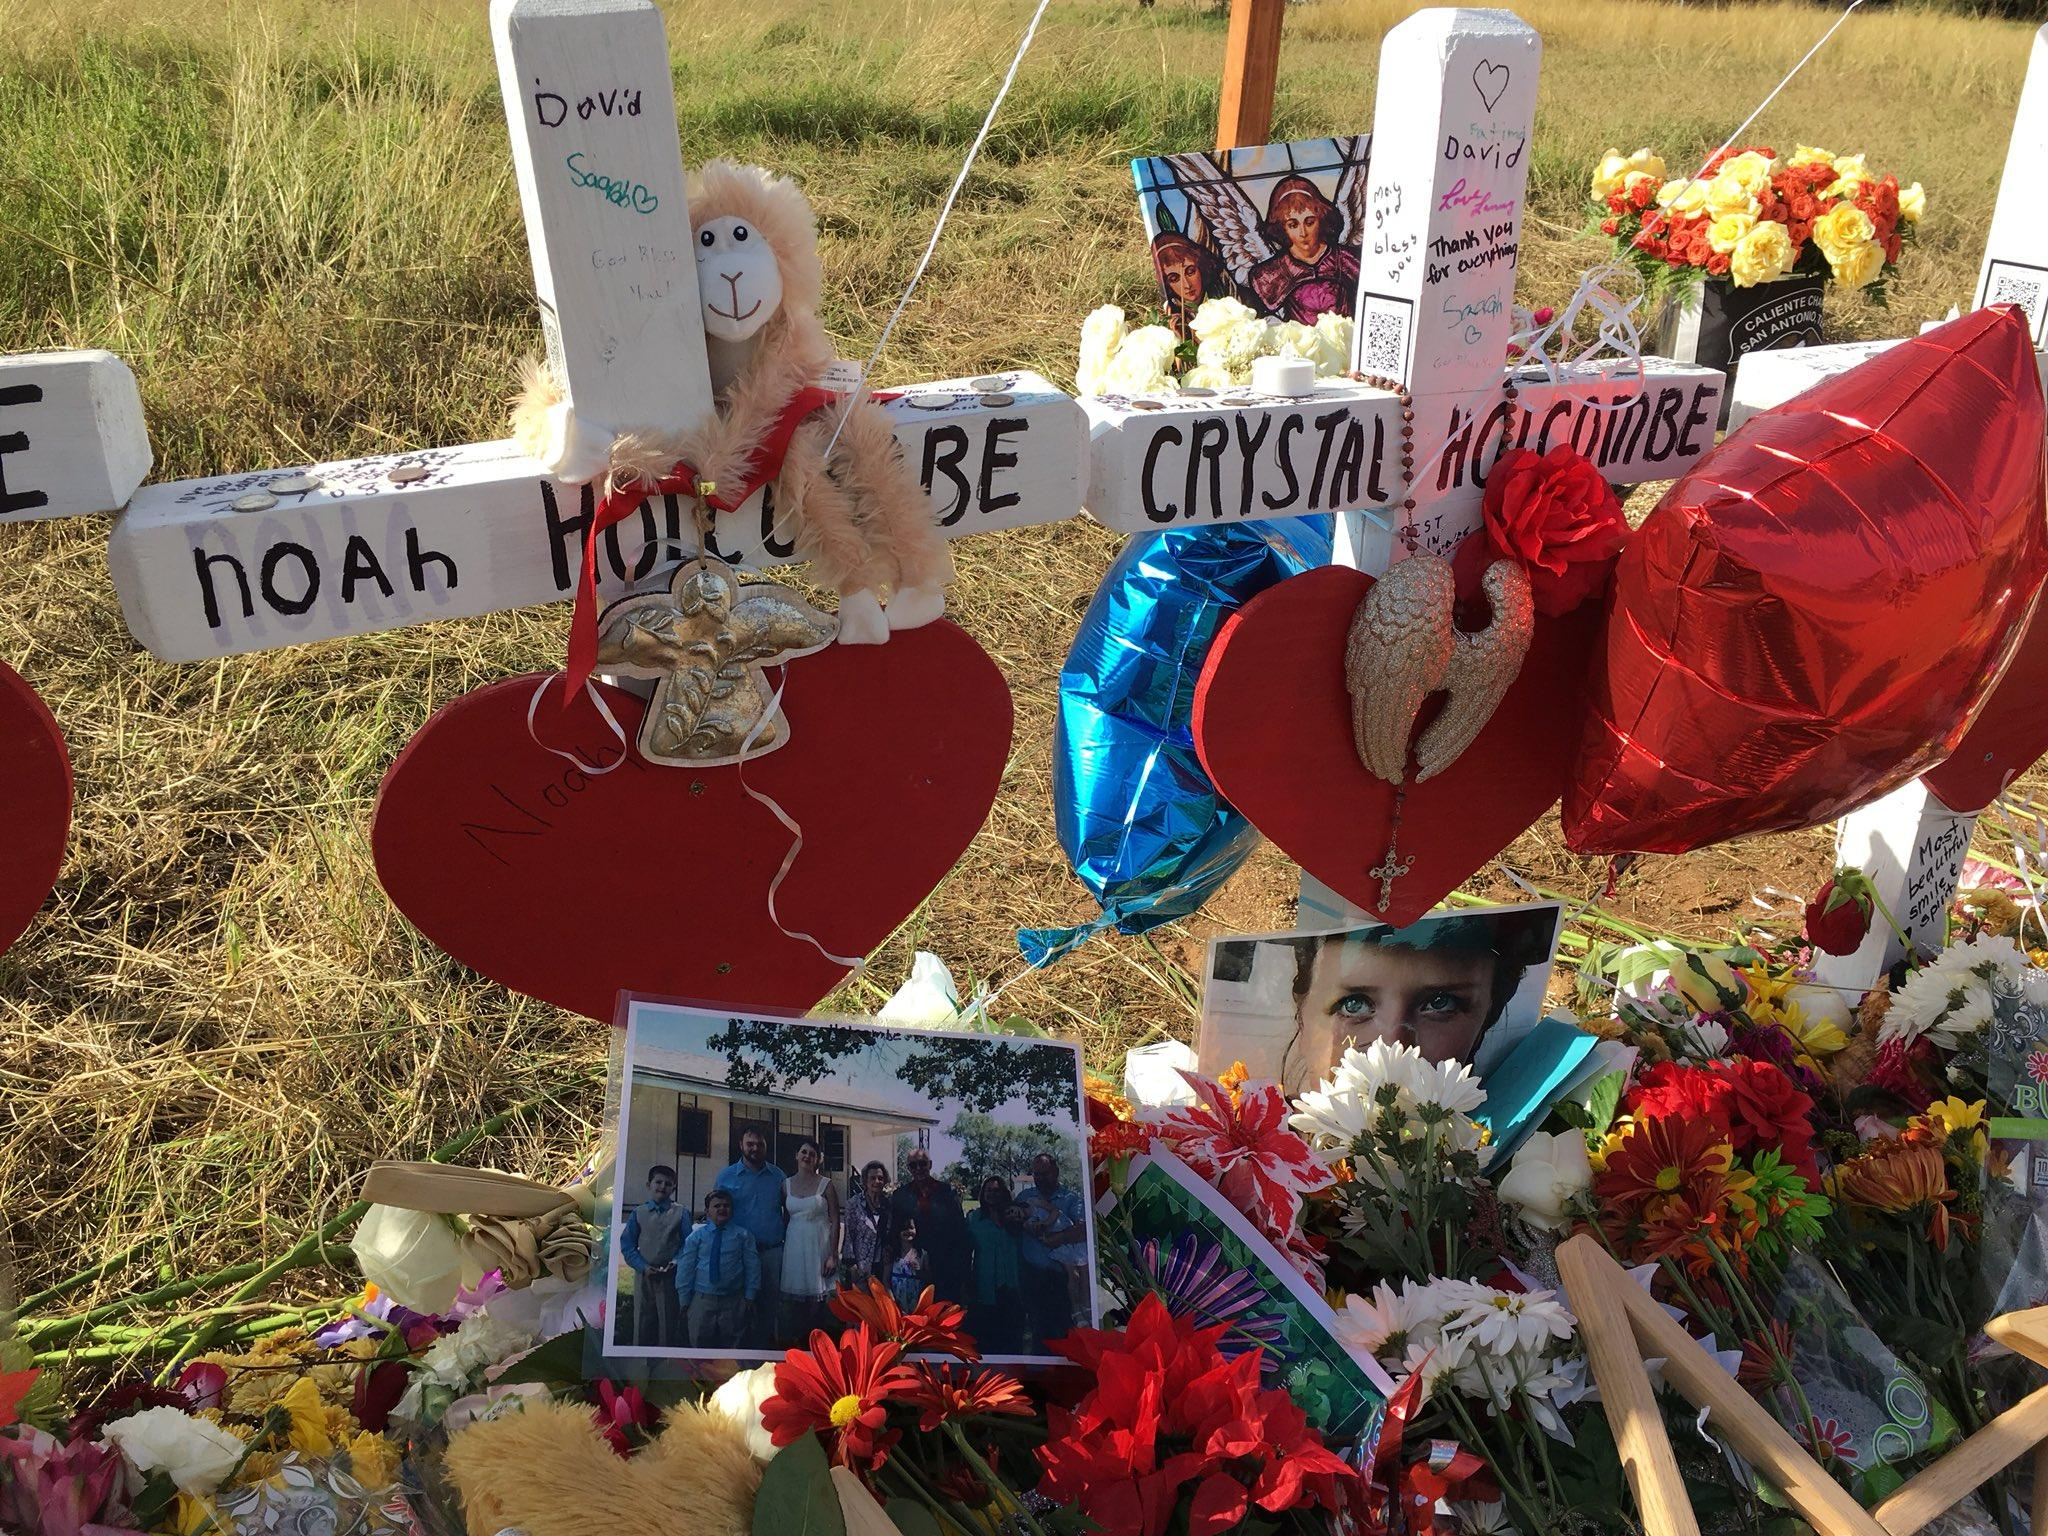 Caption: The Holcombe family, which lost nine members in the Sutherland Springs shooting, has filed a wrongful death claim against the Air Force., Credit:  Joey Palacios / Texas Public Radio